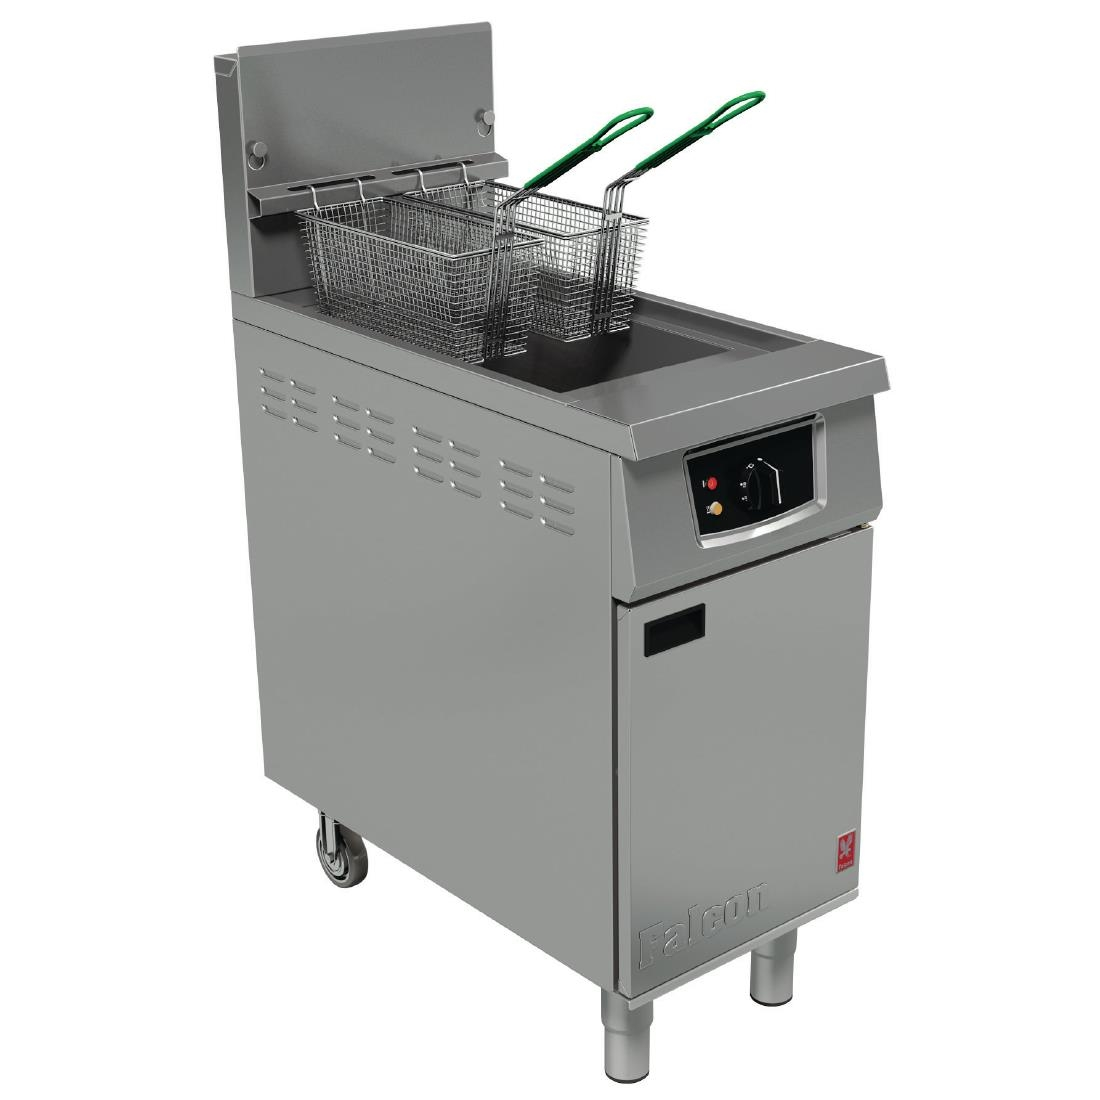 Falcon 400 Series Single Tank Twin Basket Free Standing Natural Gas Fryer G401 (CG962-N)